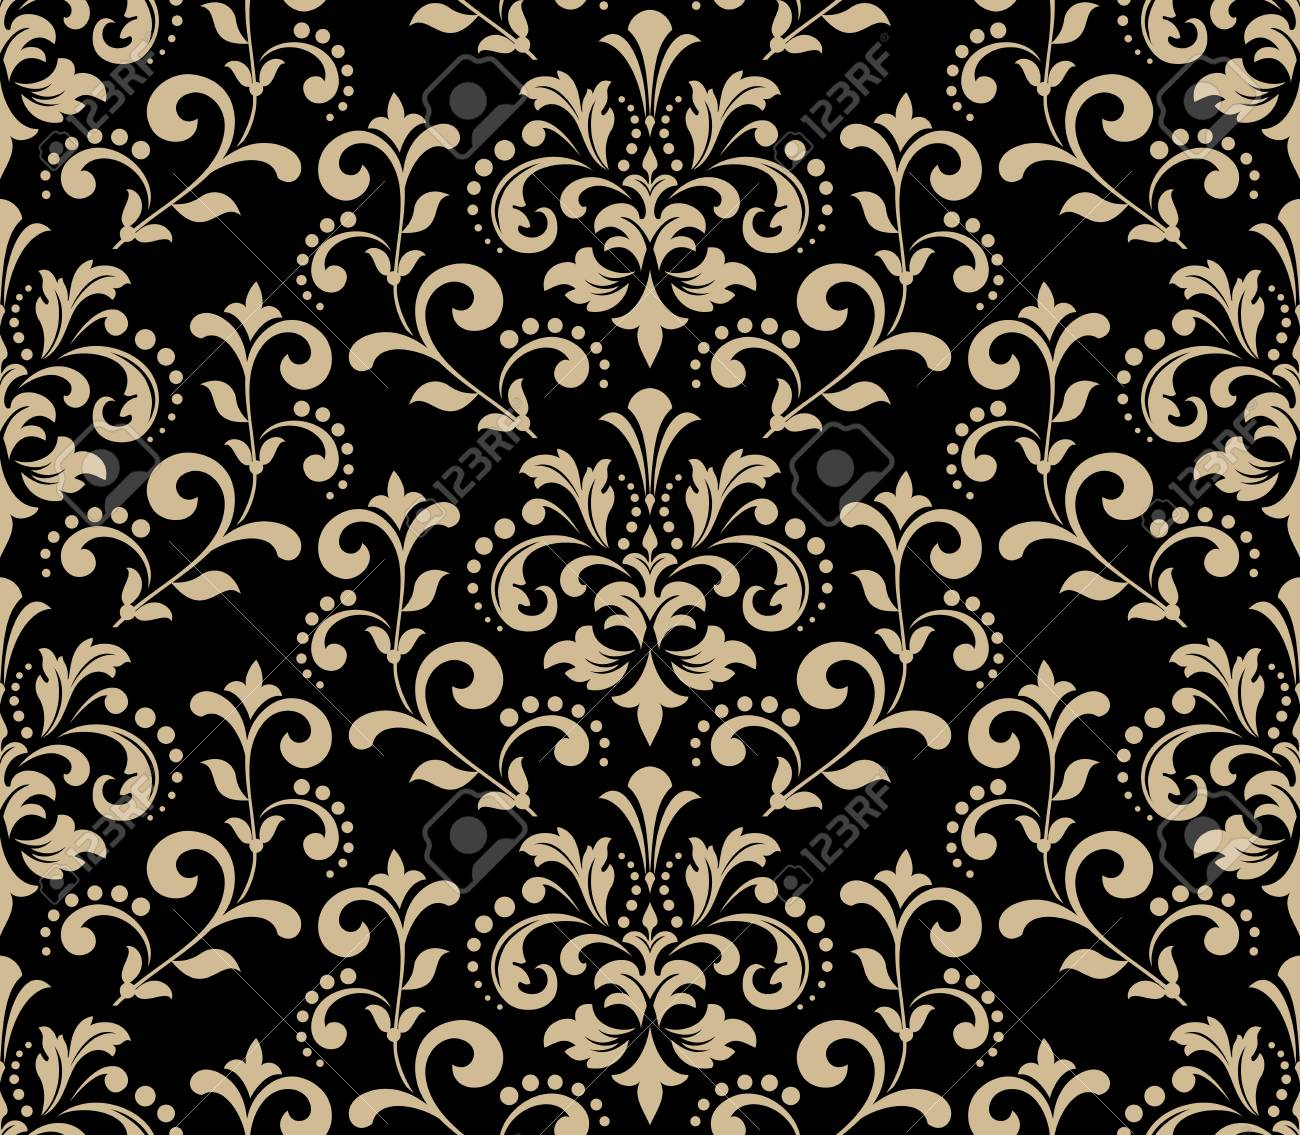 Floral Pattern Vintage Wallpaper In The Baroque Style Seamless Vector Background Gold And